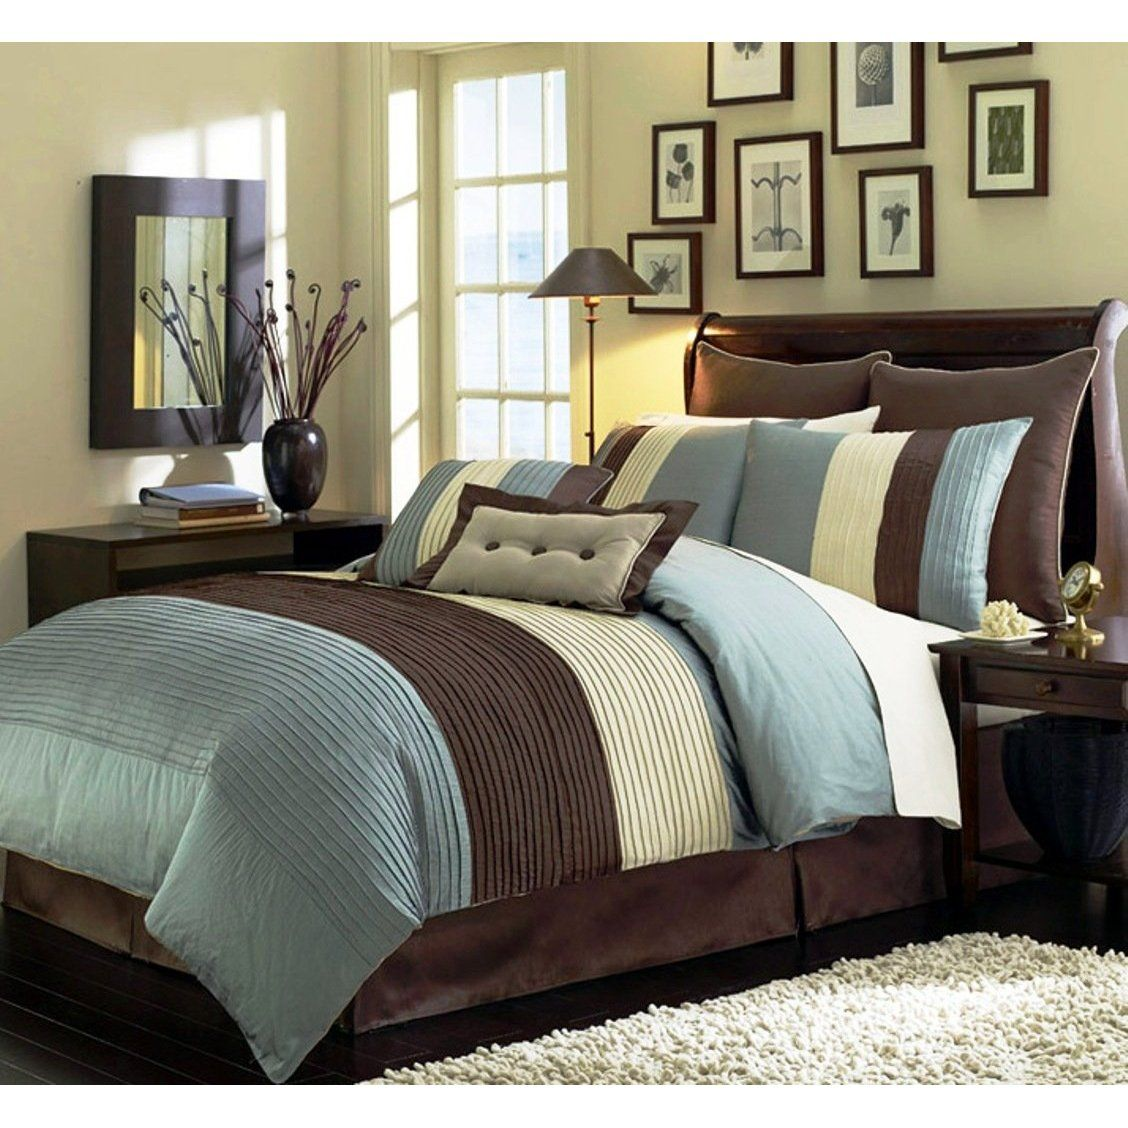 8 Pieces Luxury Stripe Comforter Blue And Brown Comforter Bed In A Bag